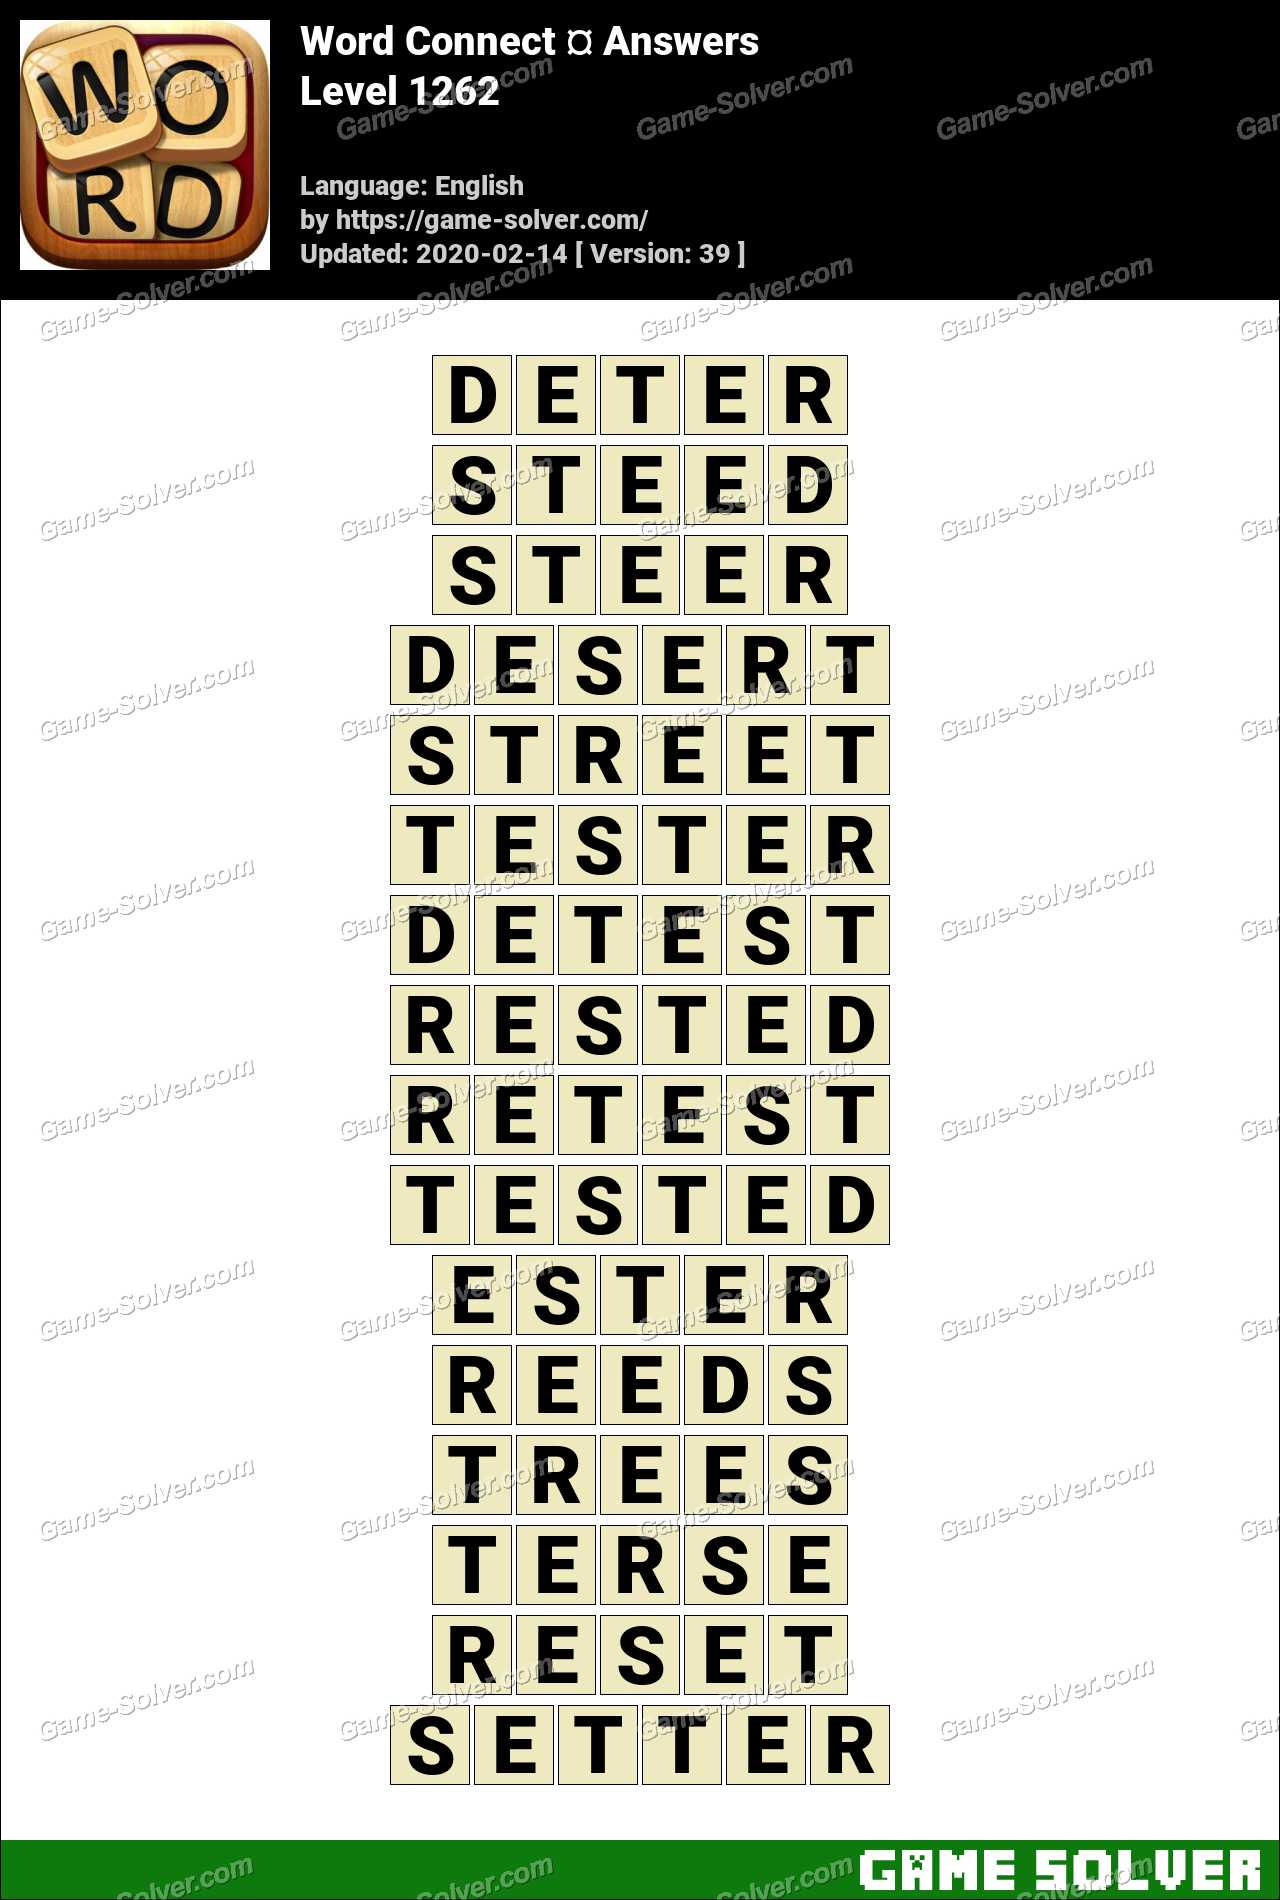 Word Connect Level 1262 Answers